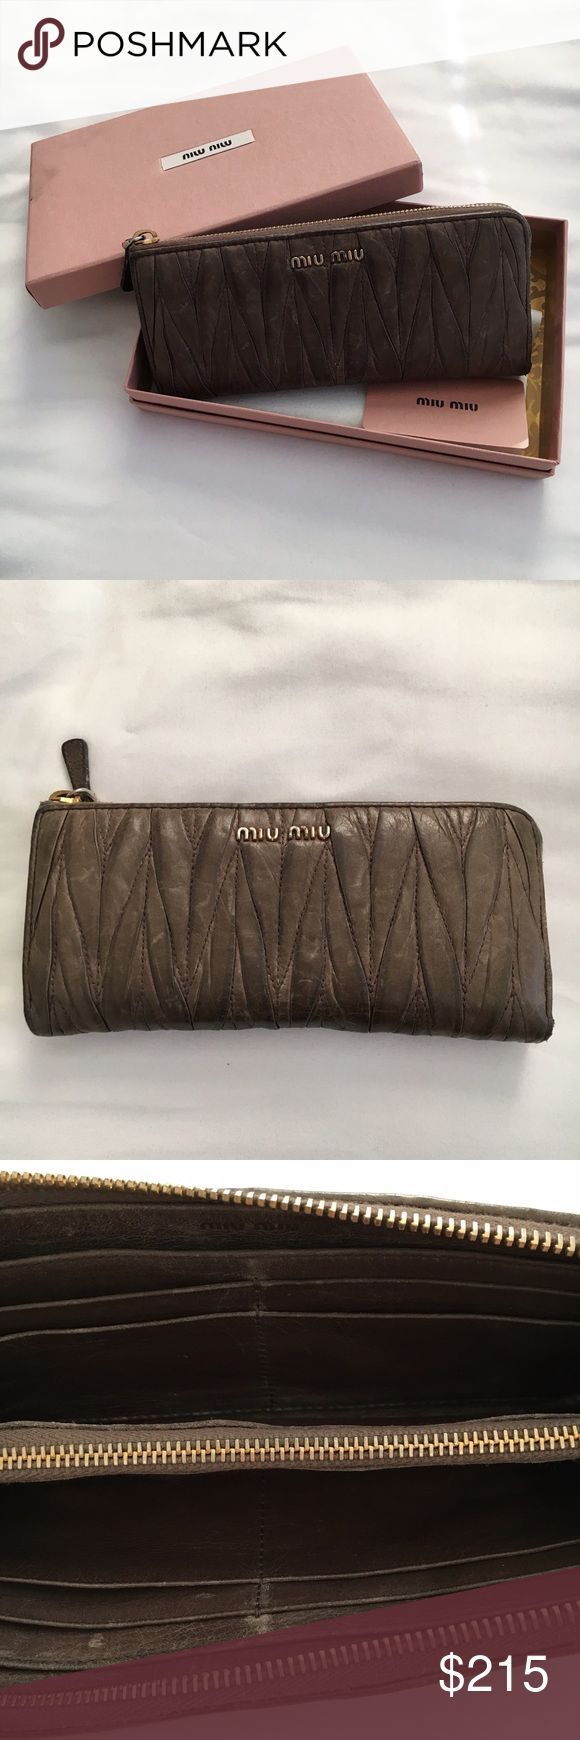 Miu Miu Wallet Miu Miu Wallet. Authentic, comes with tag and box. Contenitori Piatti color Cammeo in collection Matelasse. In used condition, signs of wear, discoloration on leather, inside fabric, and on hardware. Miu Miu Bags Wallets